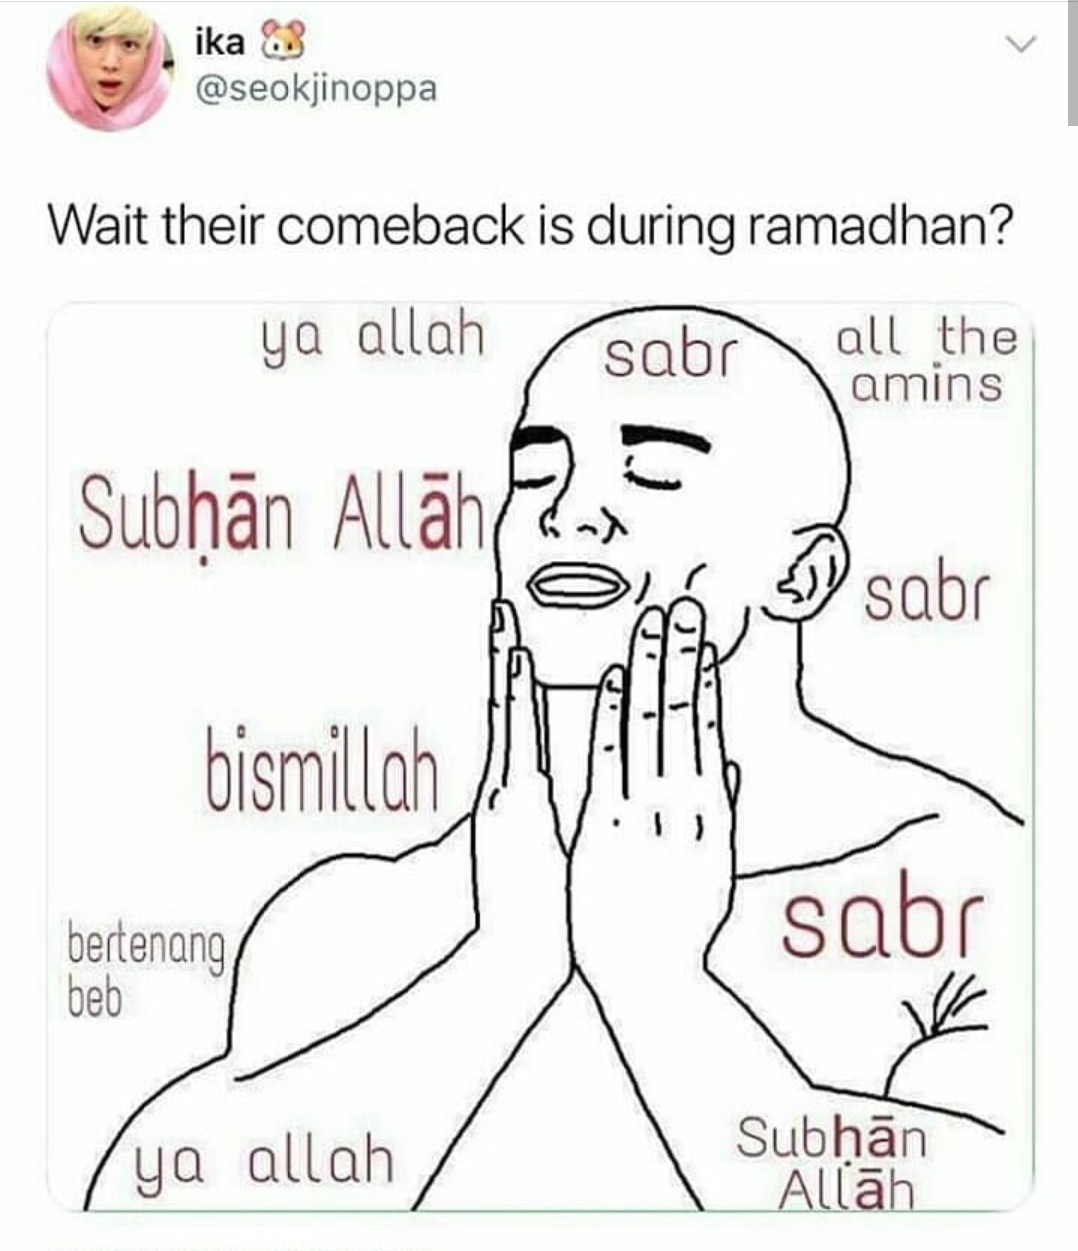 65 images about muslim memes on we heart it see more about funny meme and muslim